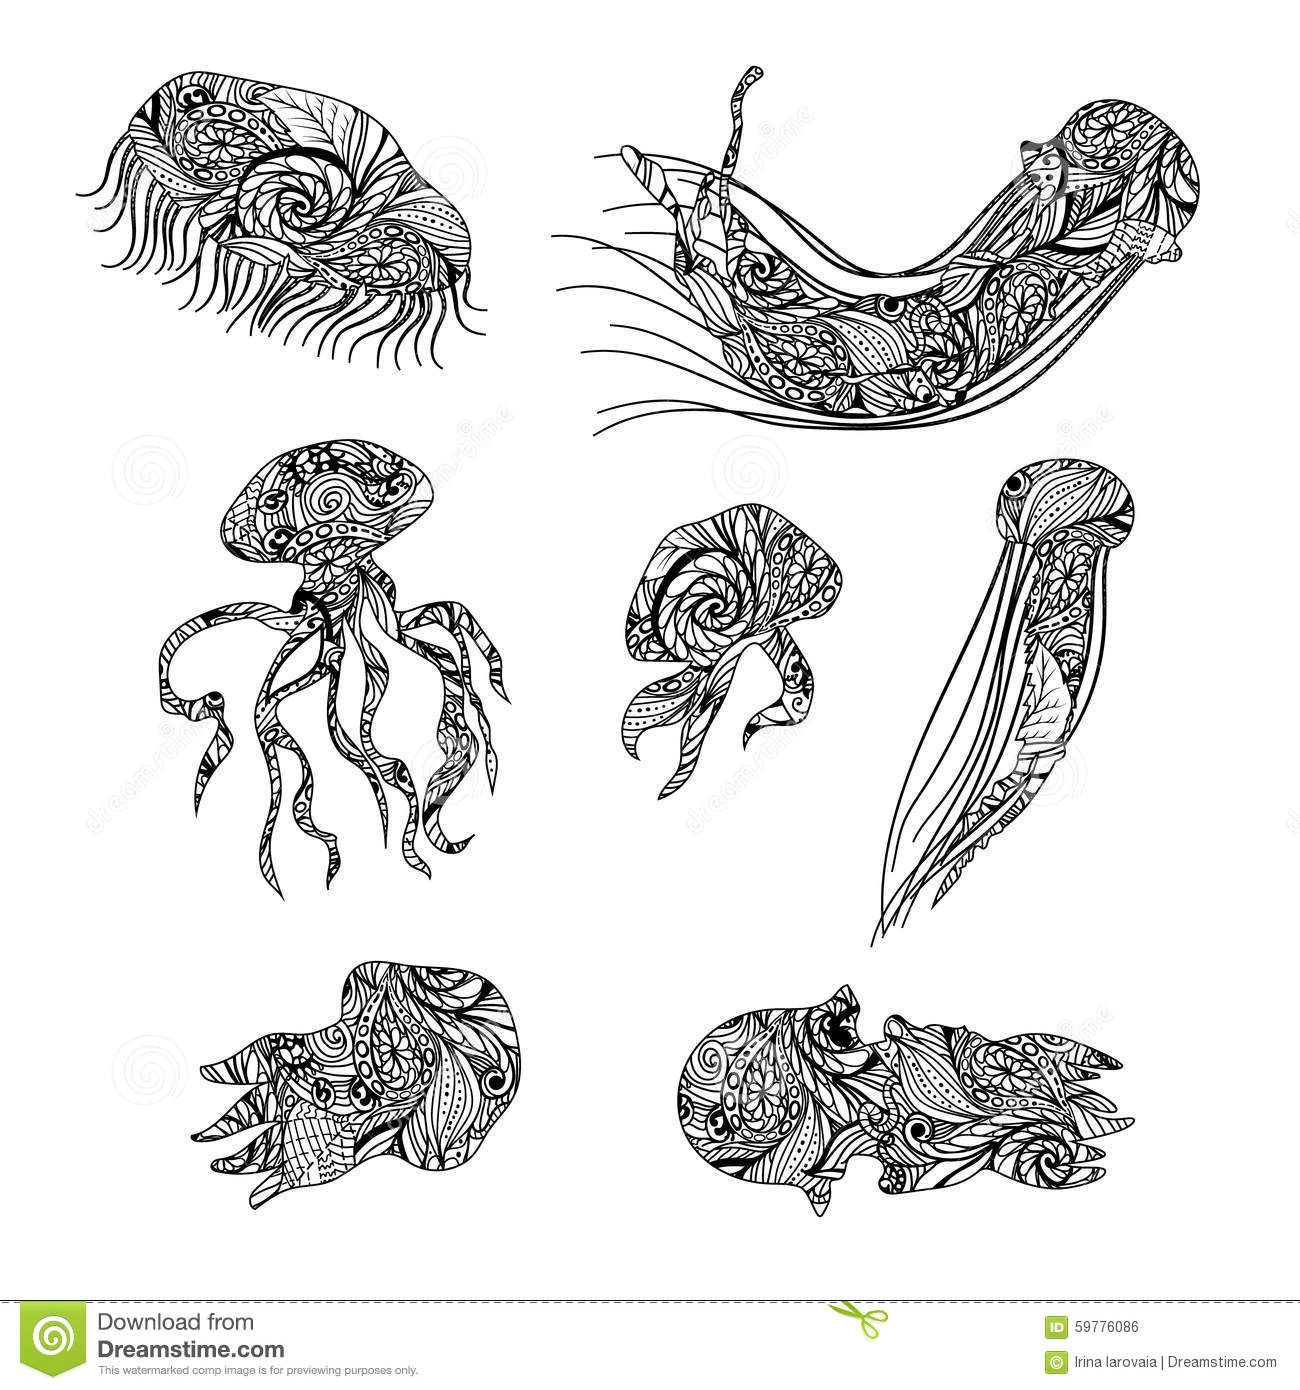 Jellyfish Graphic Patterns Abstract Illustrations Stock